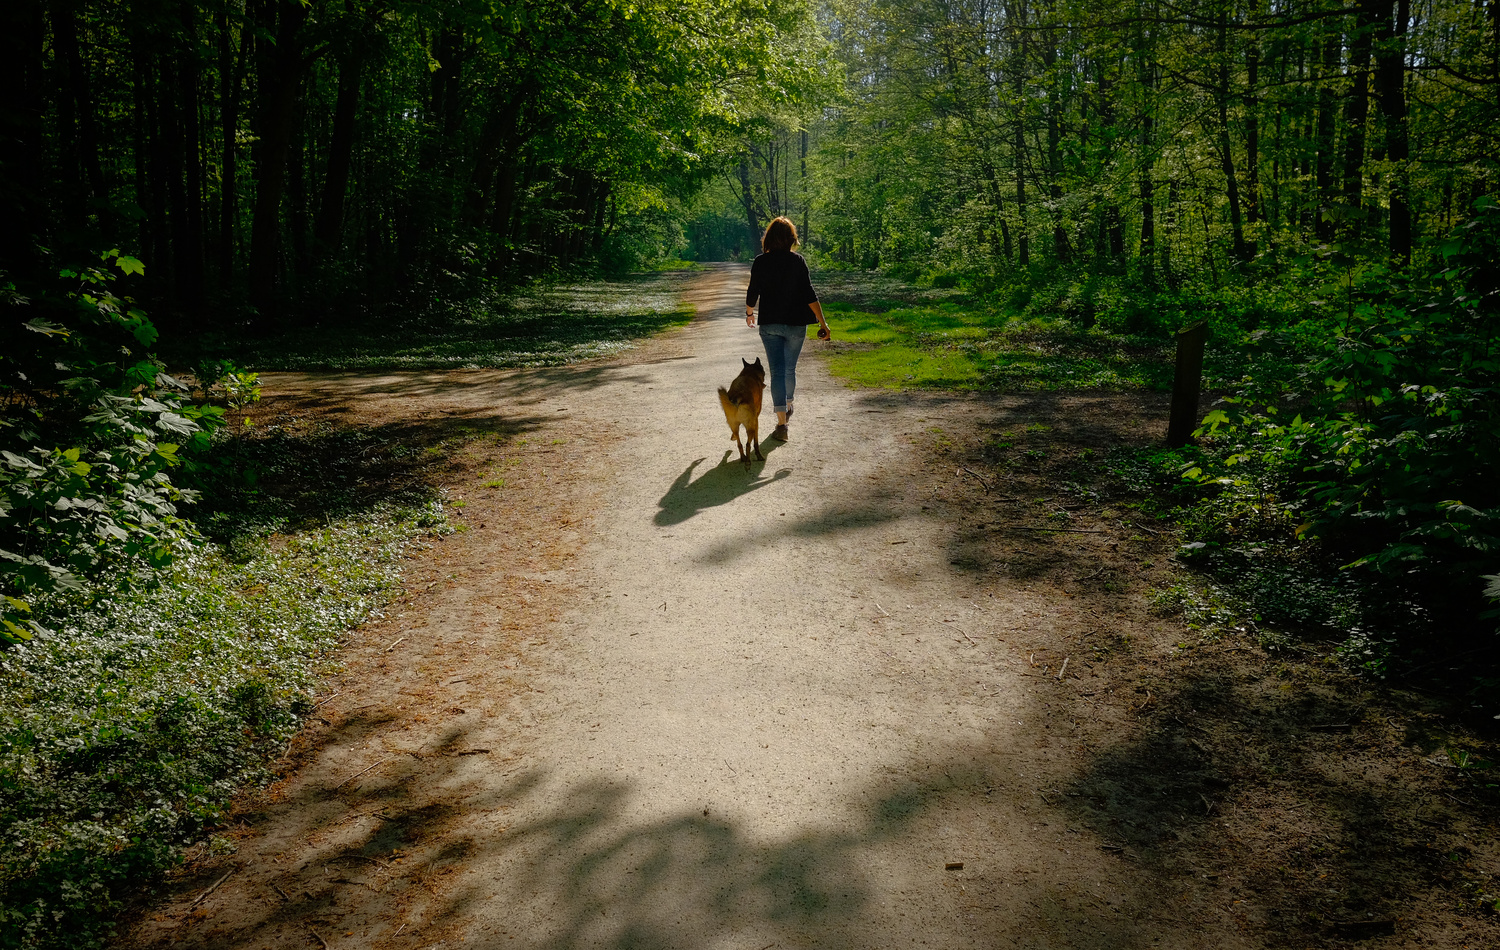 Walking the Dog with Easter by teun van dijk